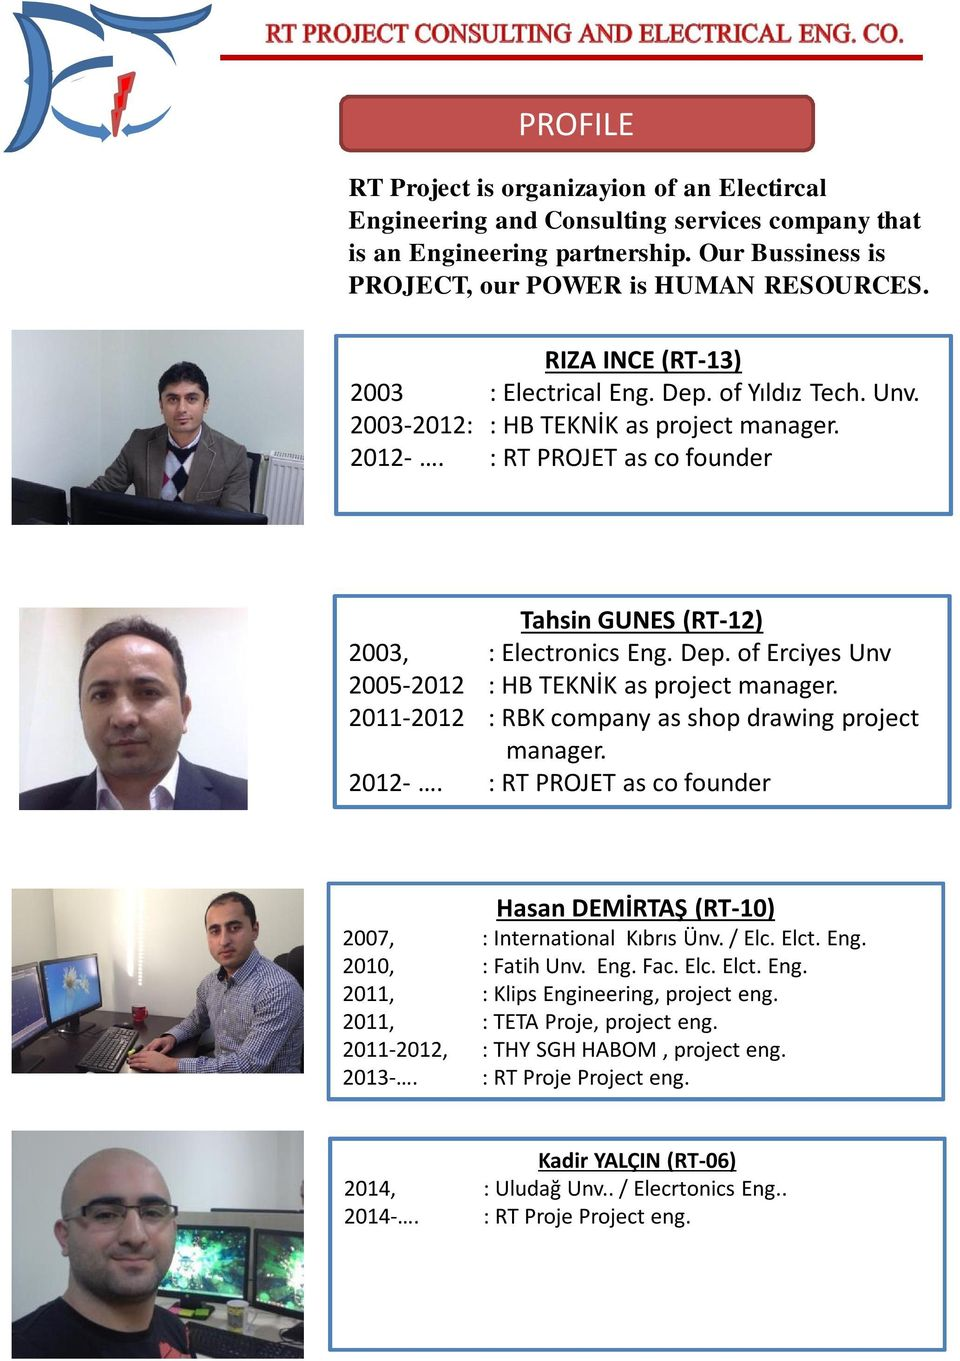 2011-2012 : RBK company as shop drawing project manager. 2012-. : RT PROJET as co founder Hasan DEMİRTAŞ (RT-10) 2007, : International Kıbrıs Ünv. / Elc. Elct. Eng.